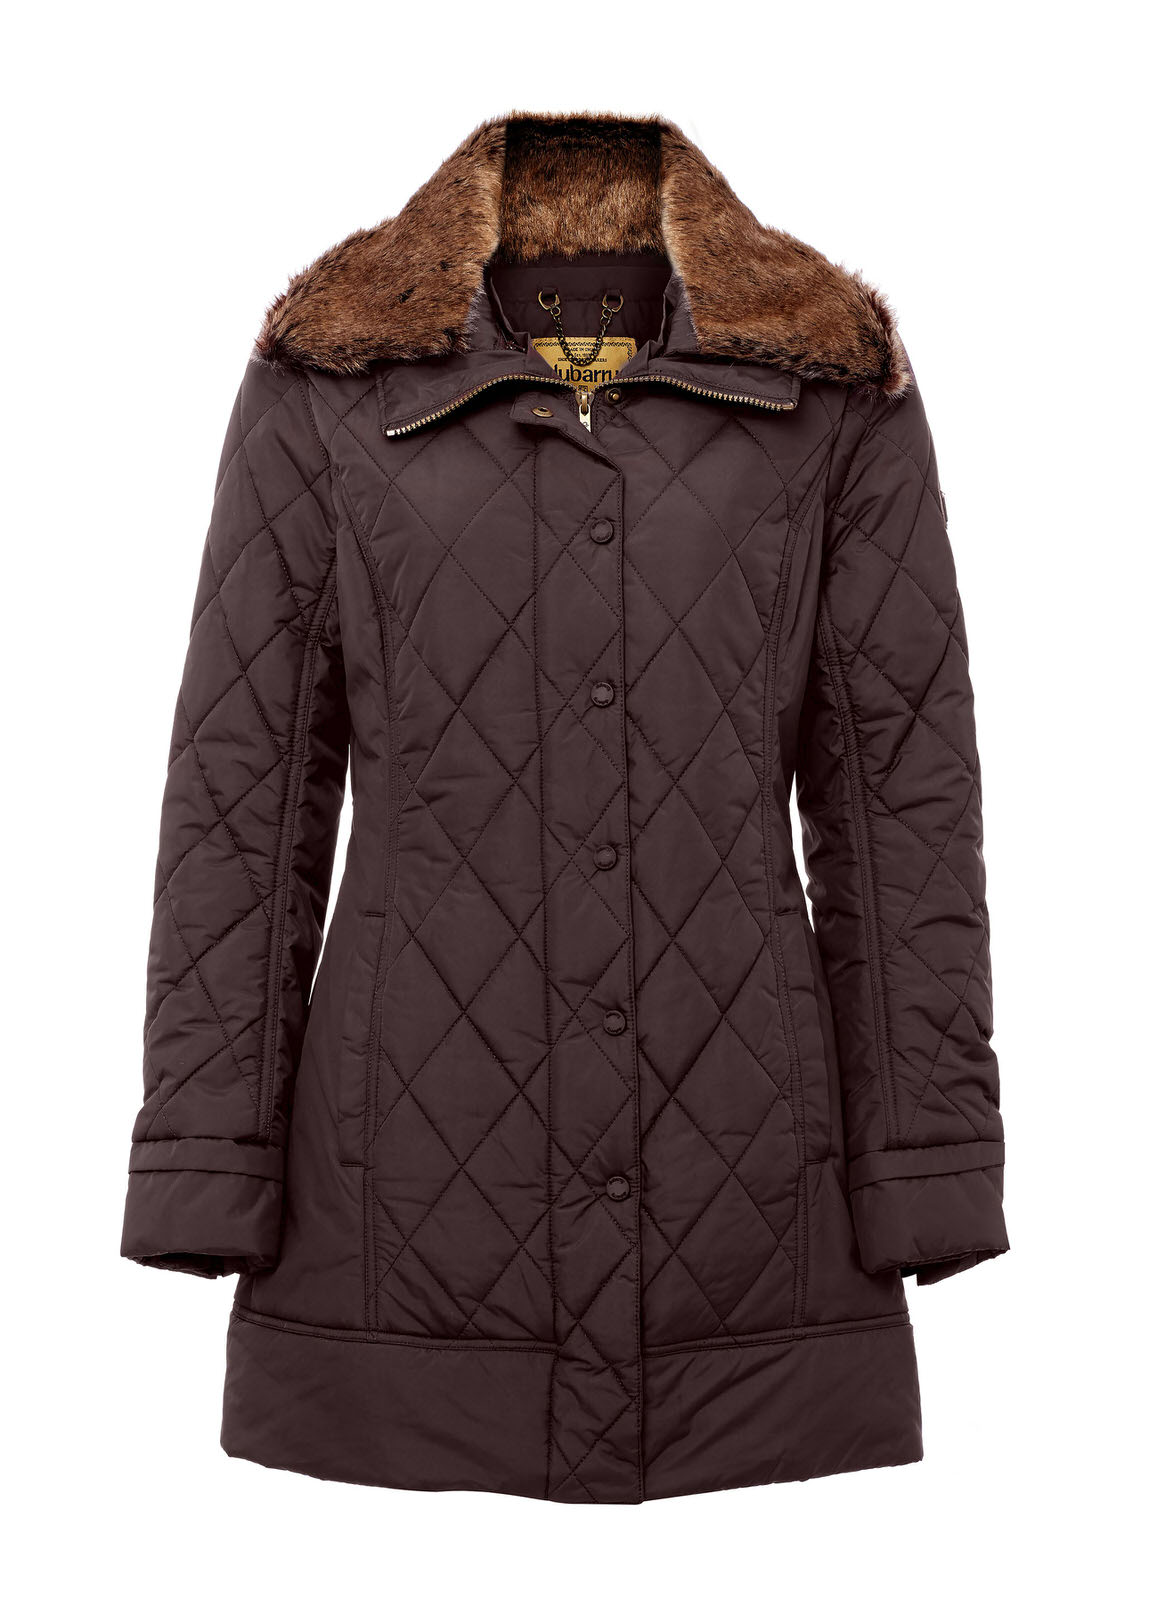 Kenmare_Quilted_Coat_Caramel_Image_1